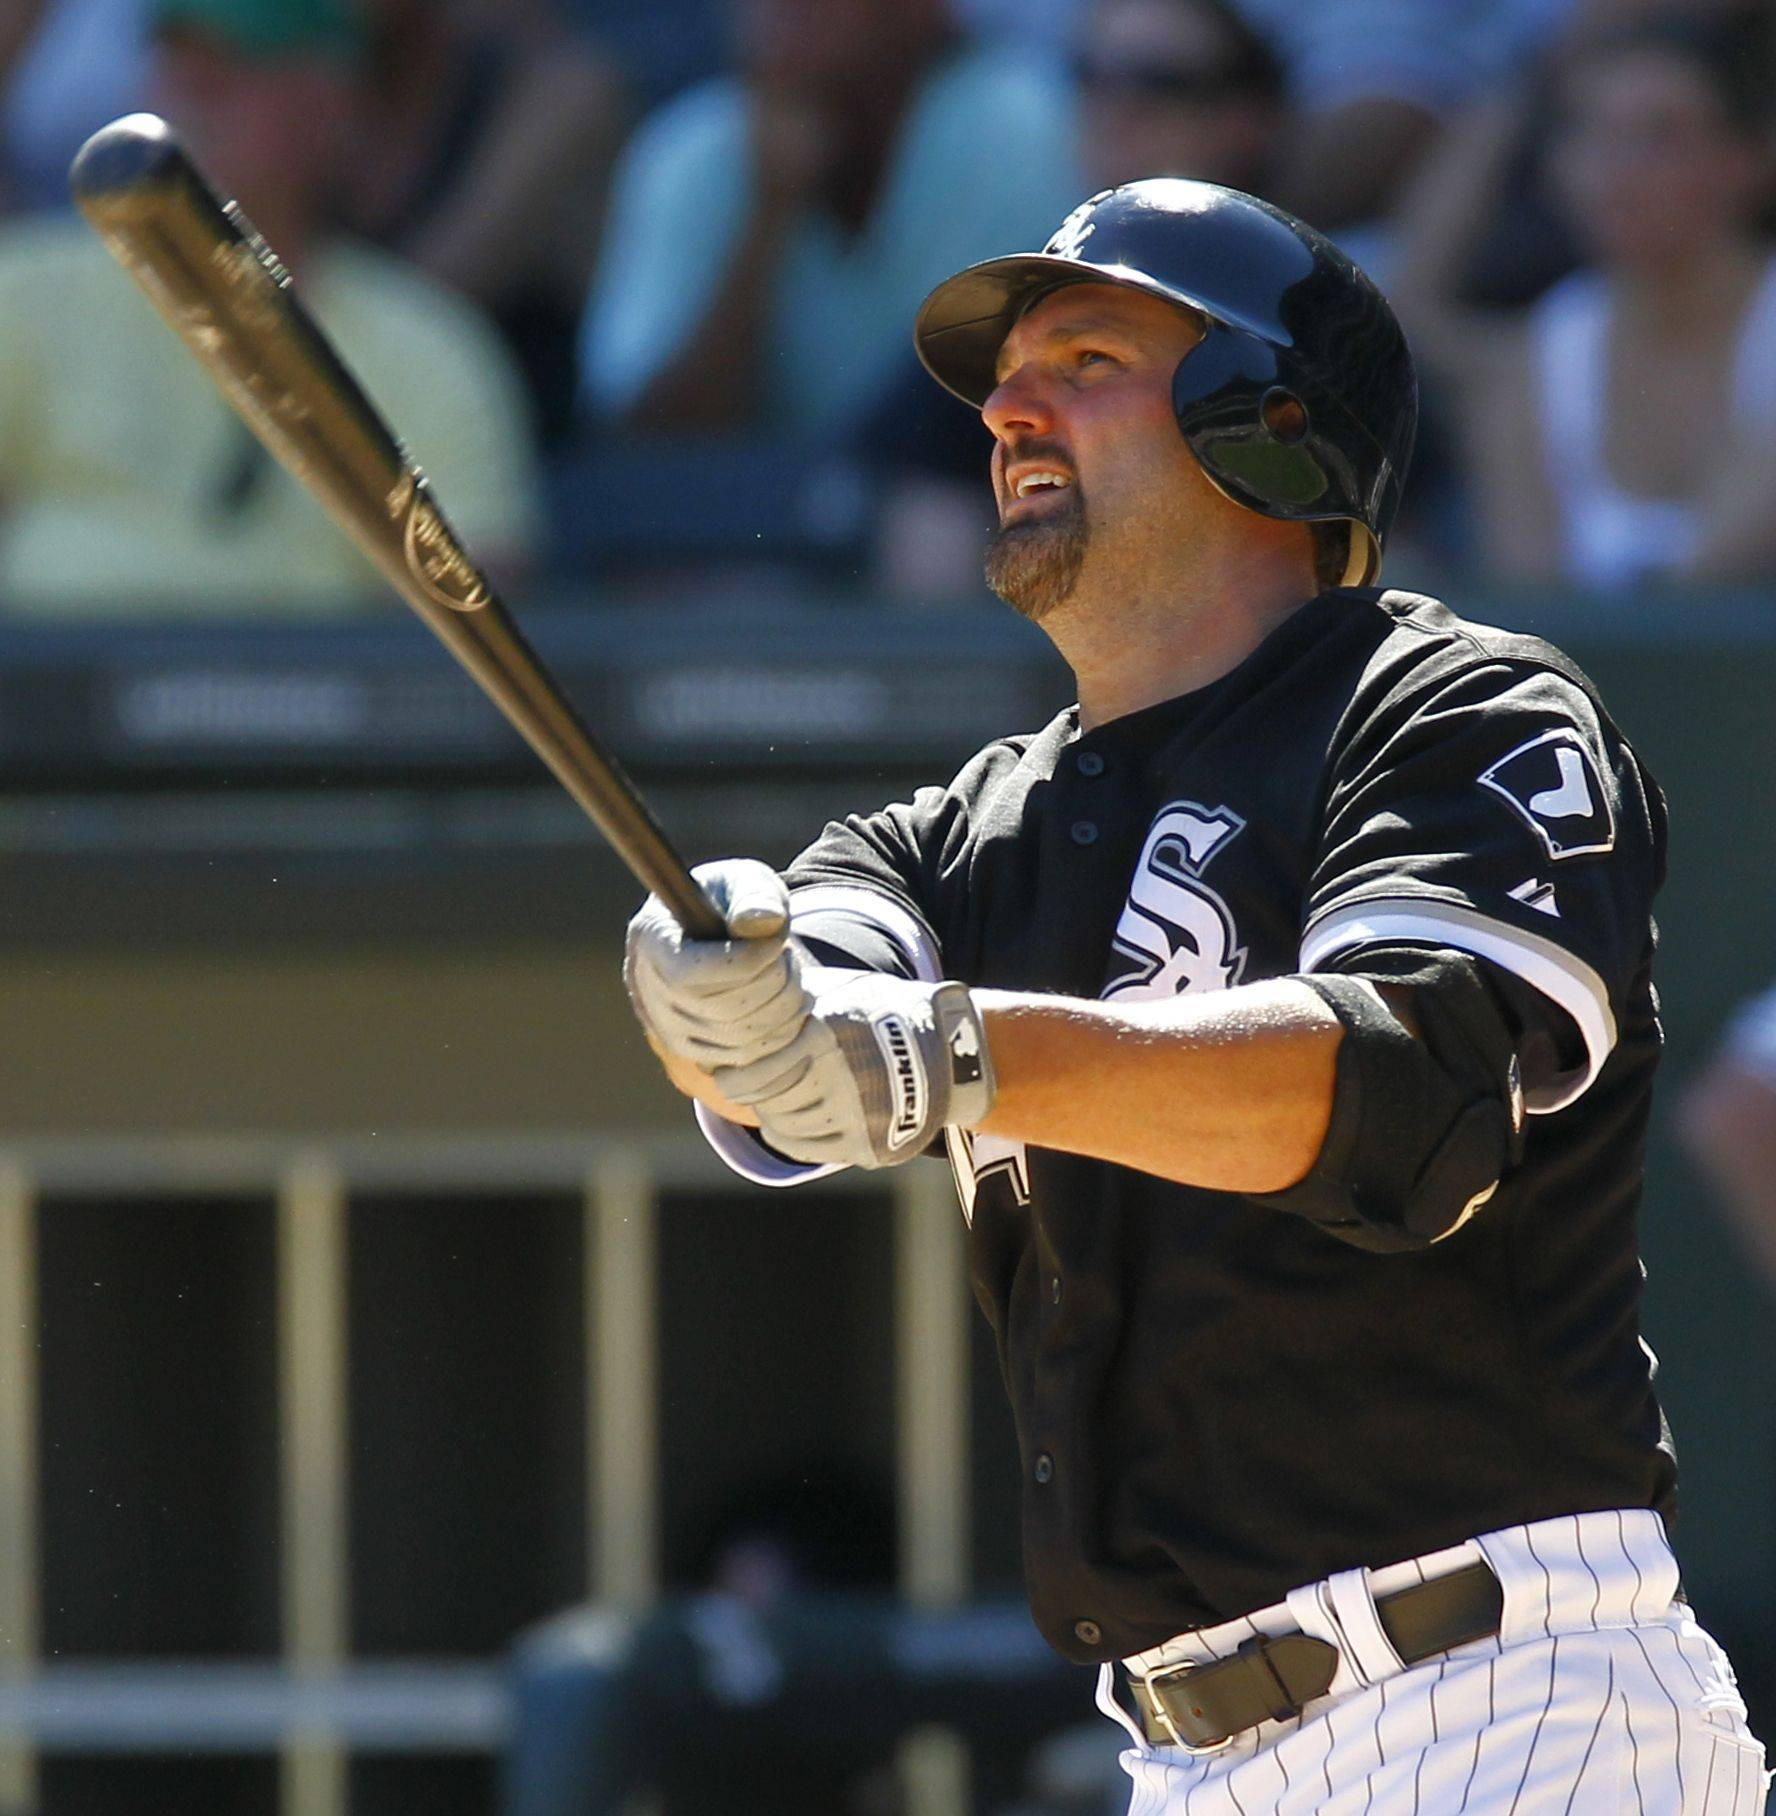 Paul Konerko homered Sunday at Kansas City and has 30 homers and 103 RBI this season. Konerko has hit 30 or more homers and piled up 100 or more RBI five times in his career.